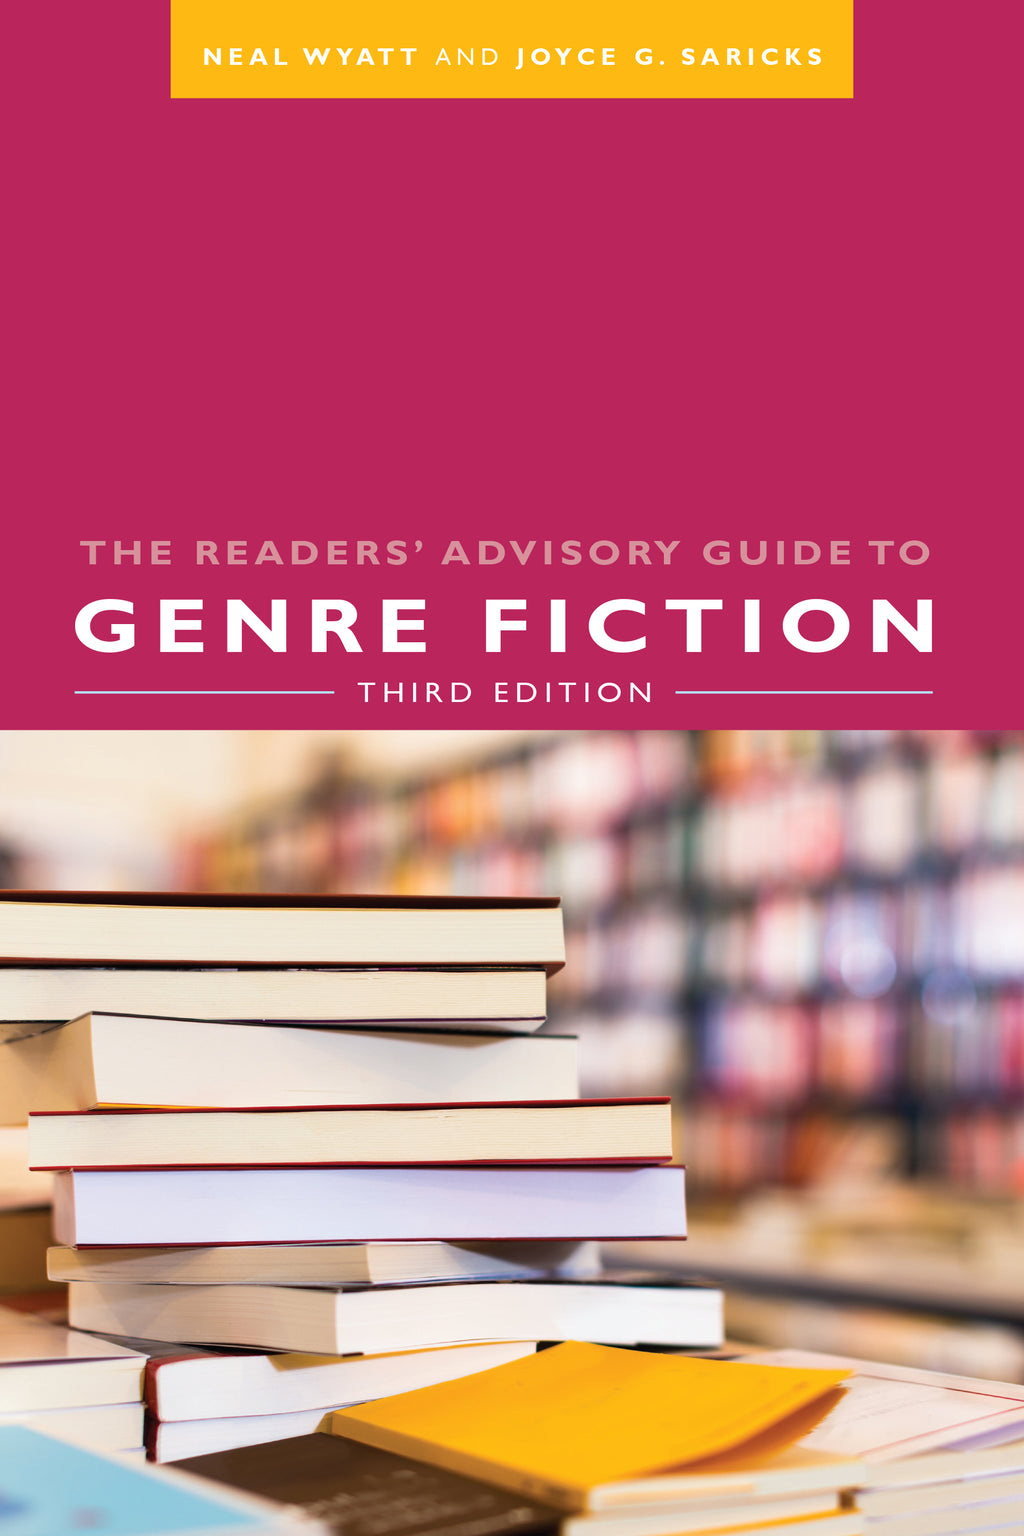 The Readers' Advisory Guide to Genre Fiction, Third Edition